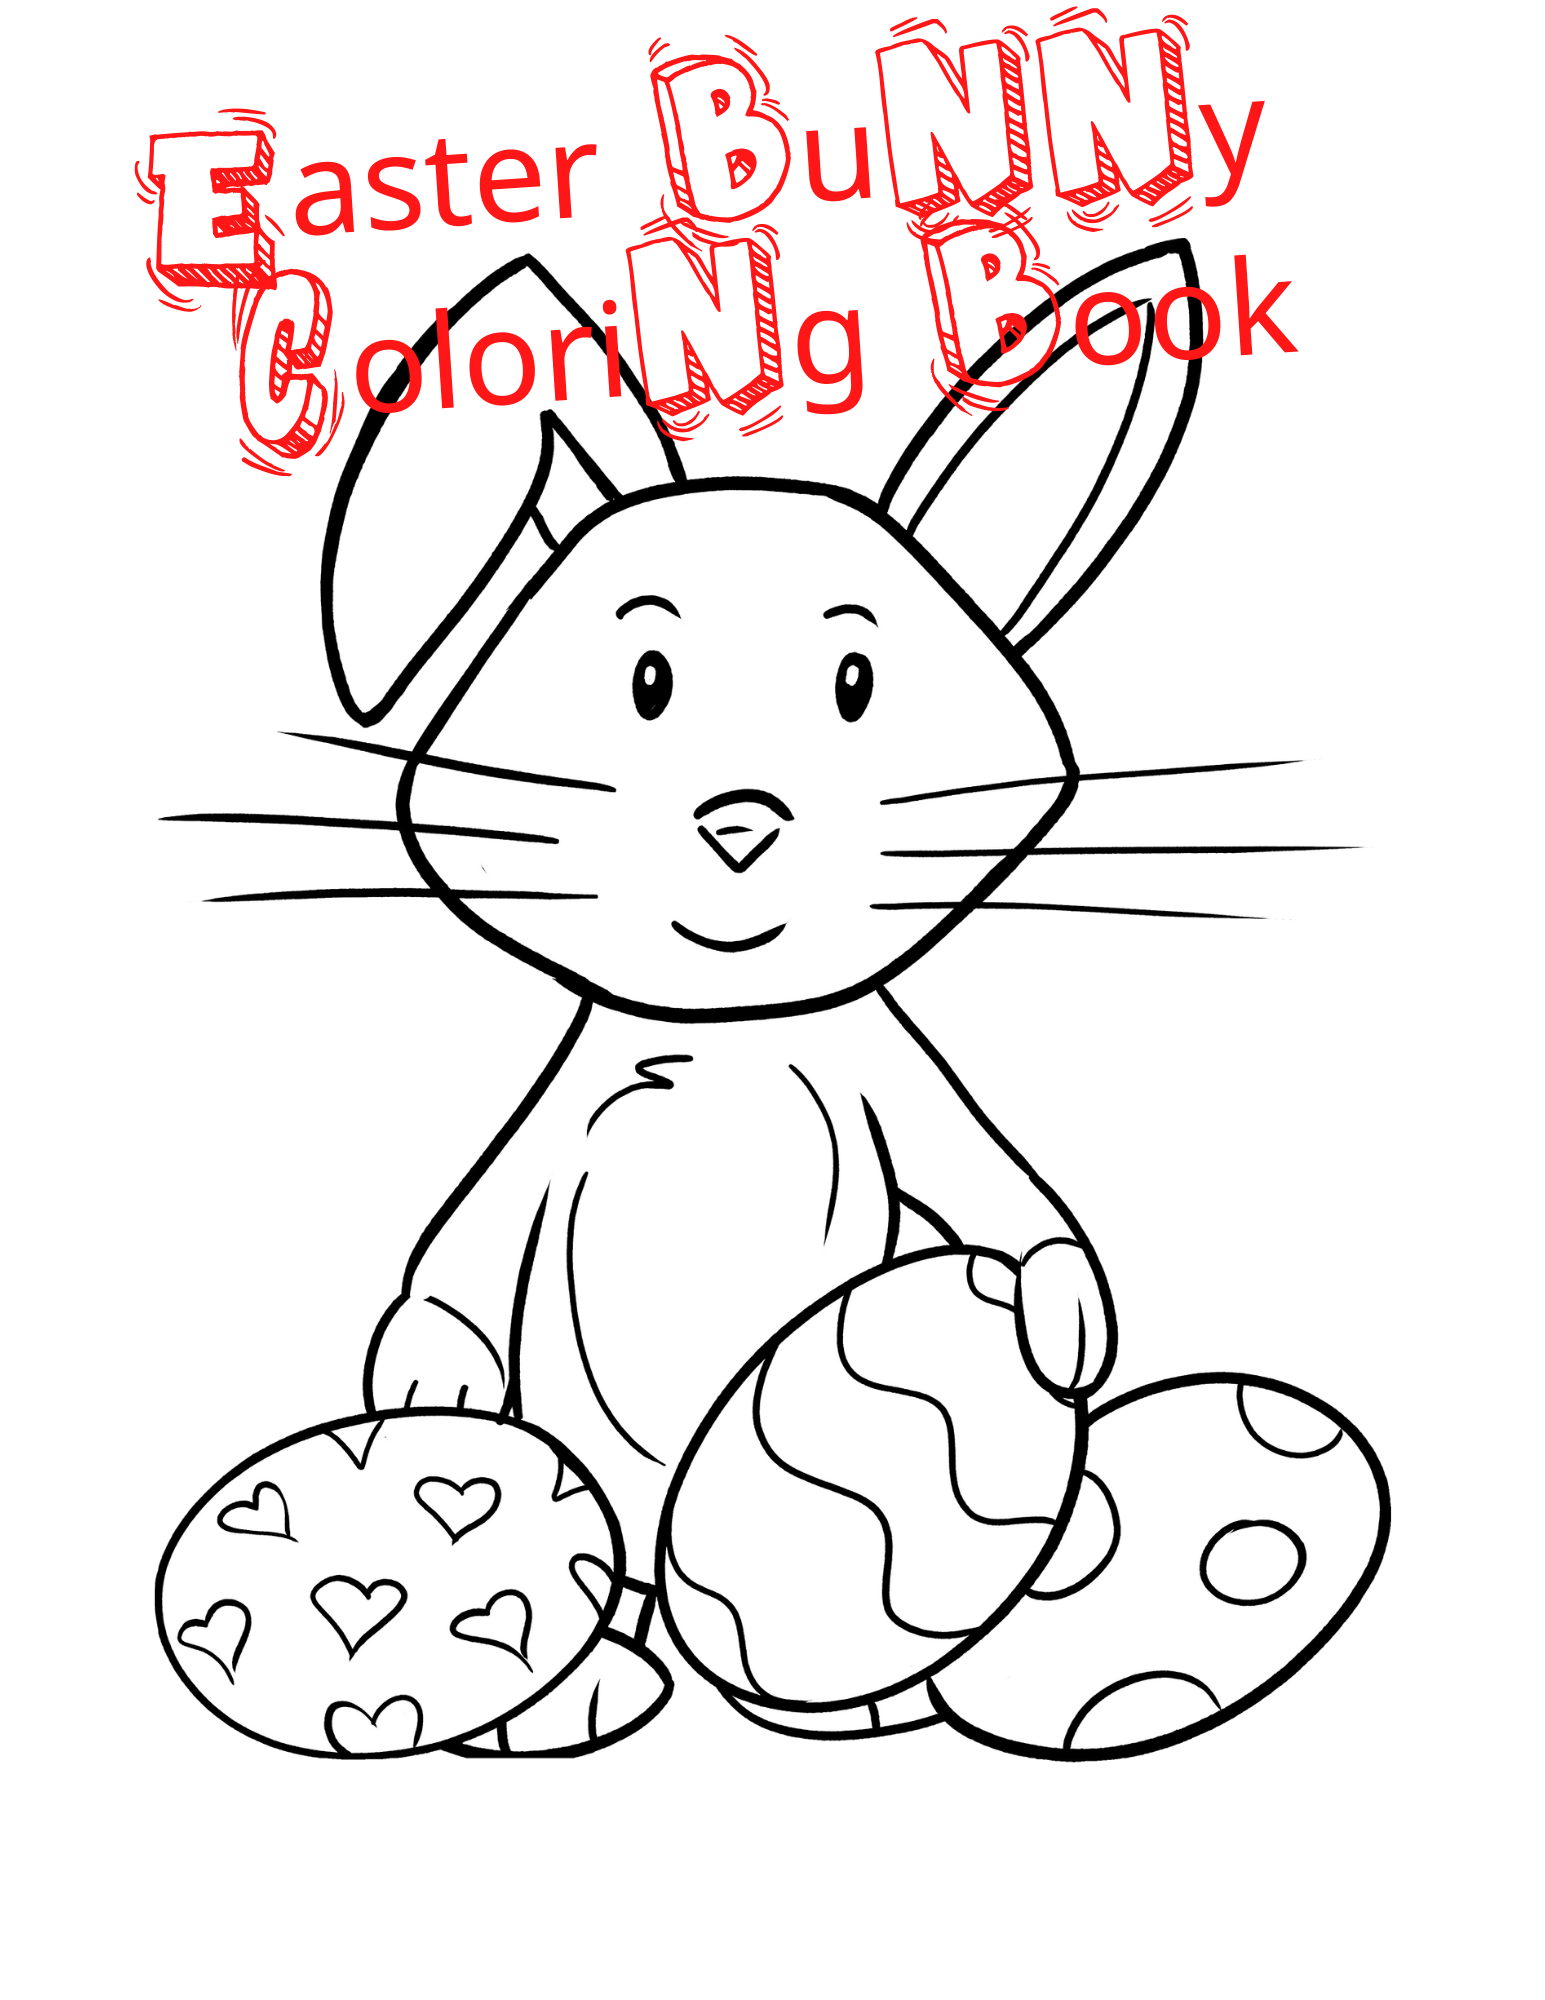 Happy Easter Coloring Book For Kids In 2020 Toddler Coloring Book Easter Coloring Book Bunny Coloring Pages